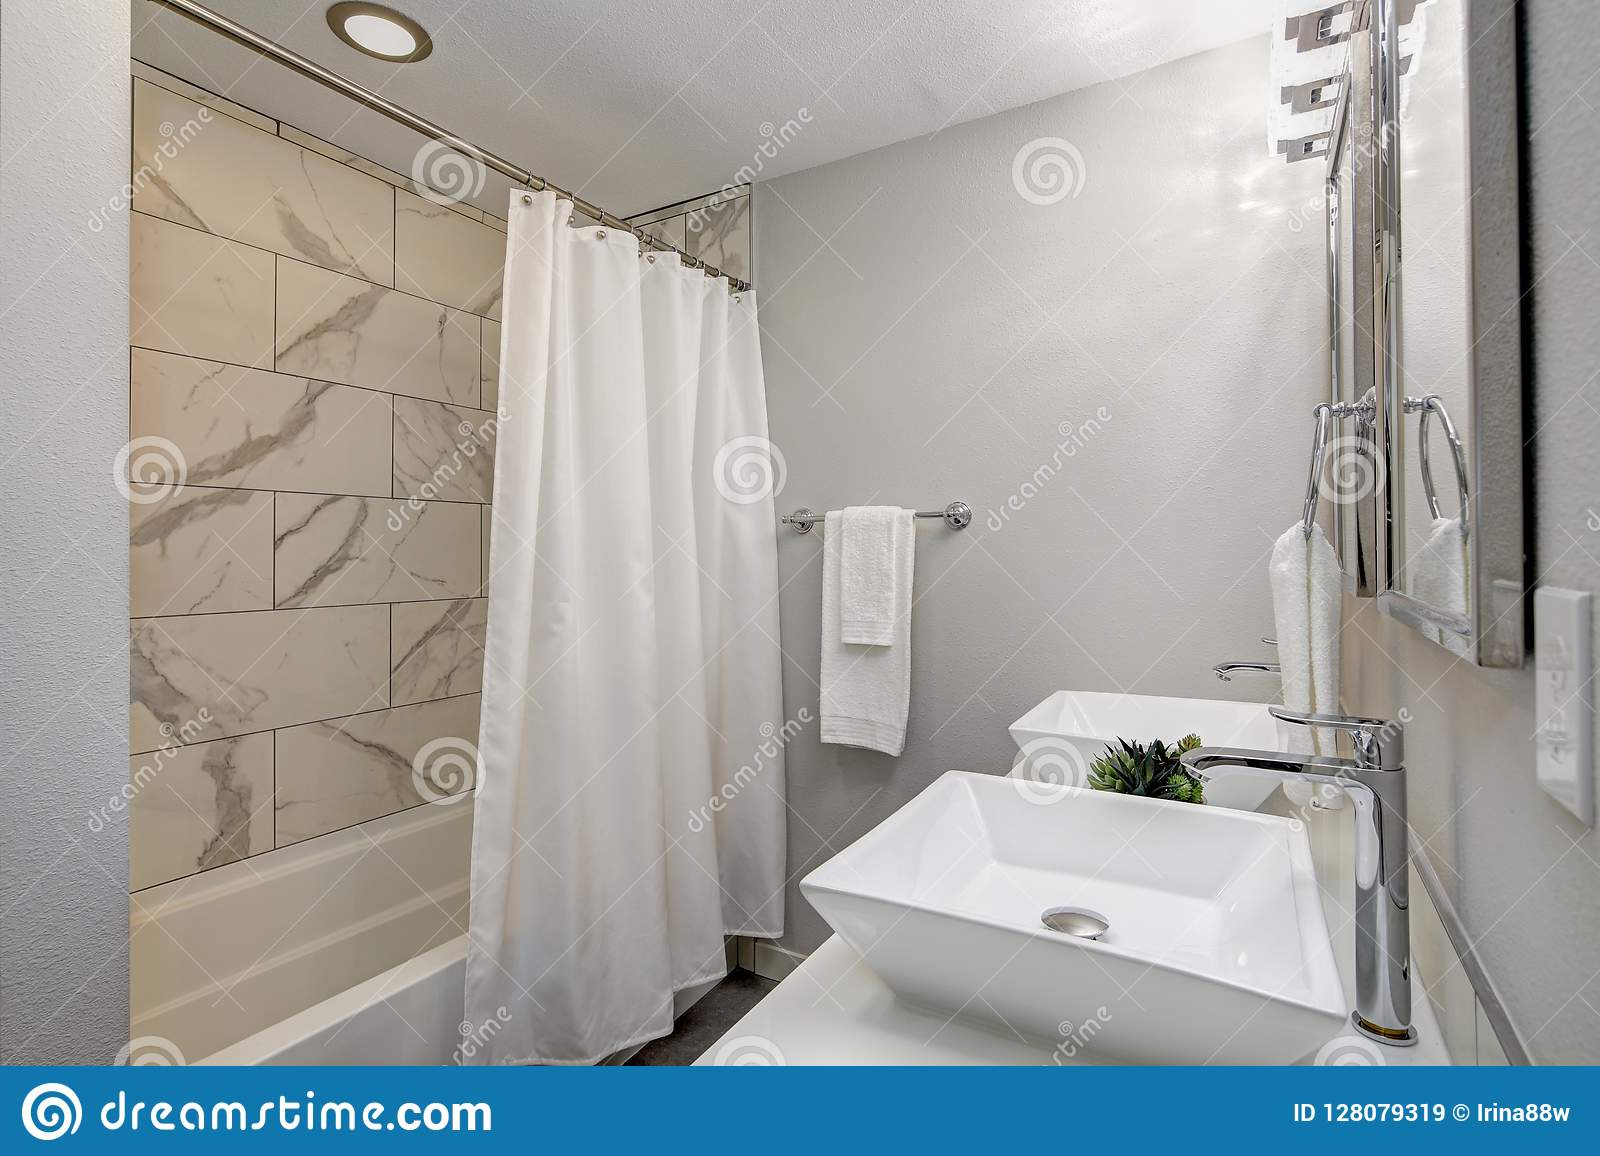 Luxurious Master Bath With Marble Tile Stock Image Image Of Apartment Home 128079319